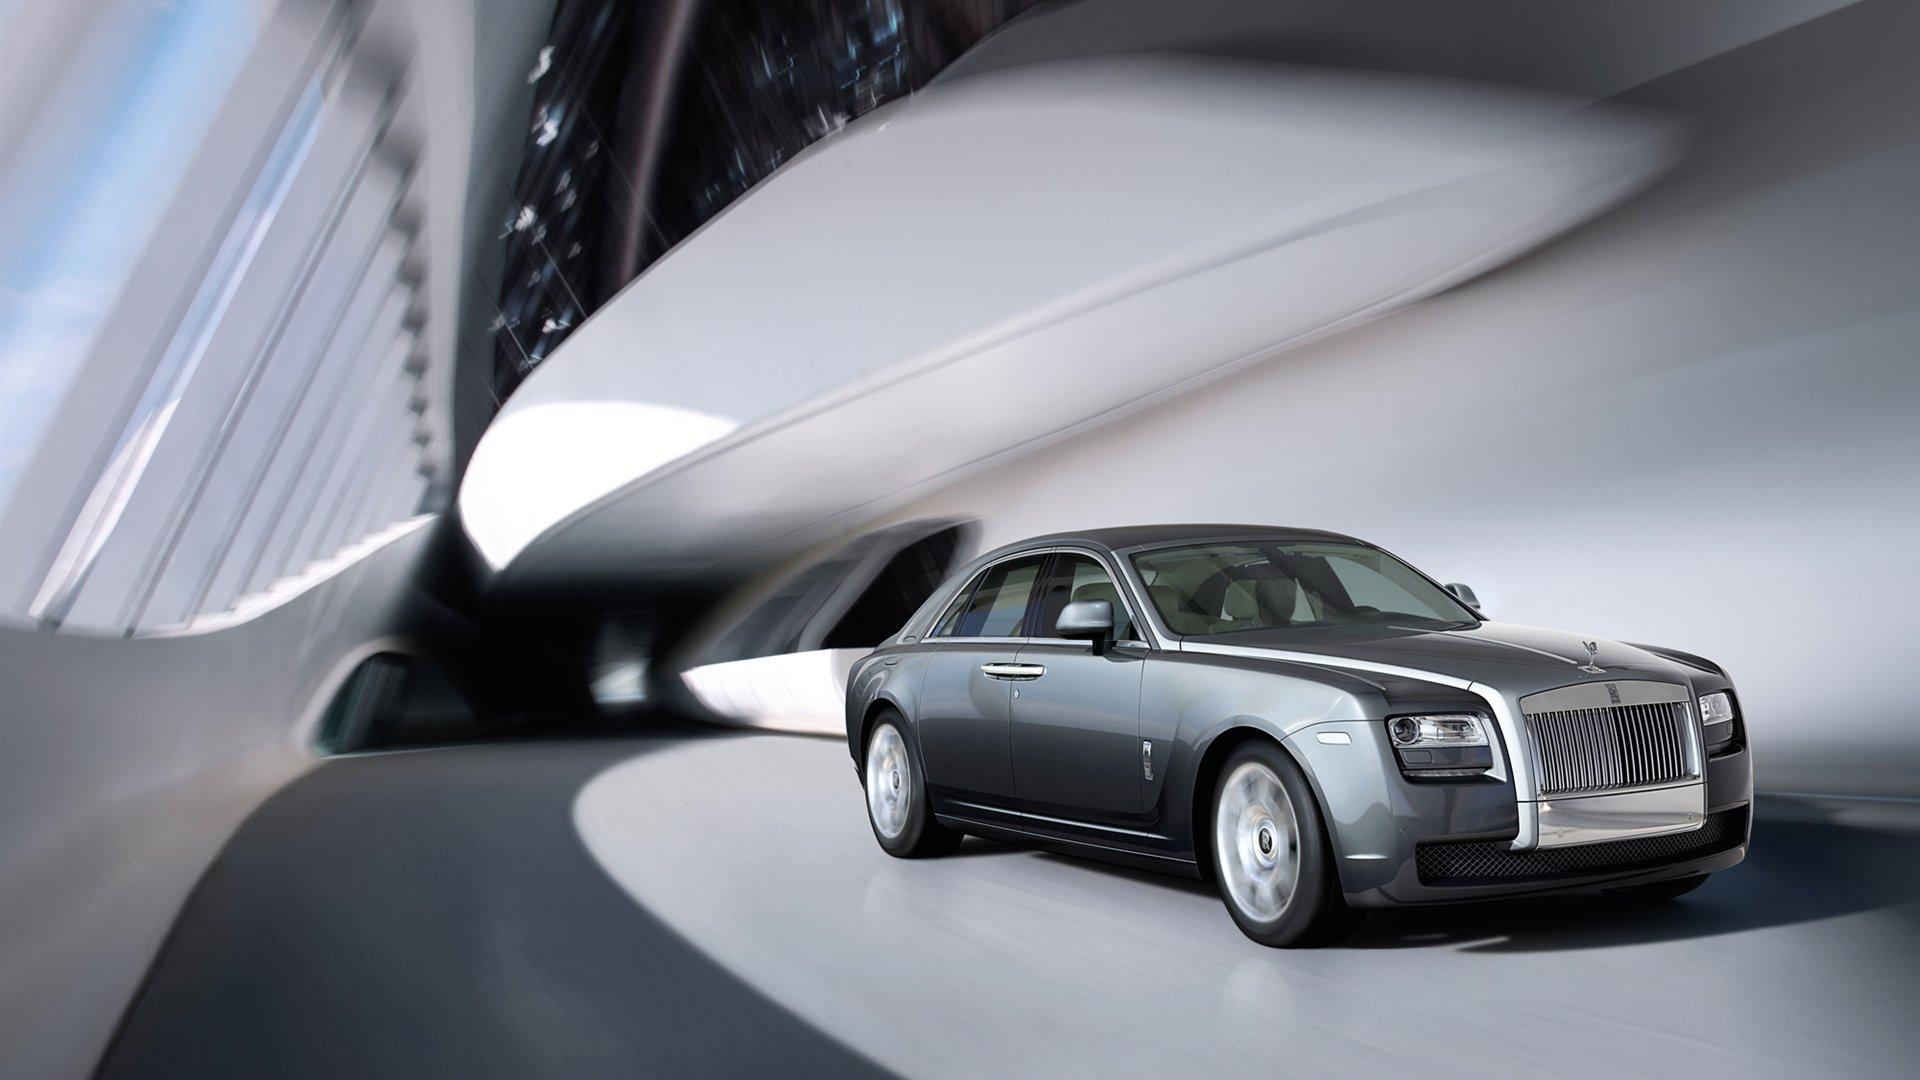 2012 rolls-royce ghost wallpaper and image gallery